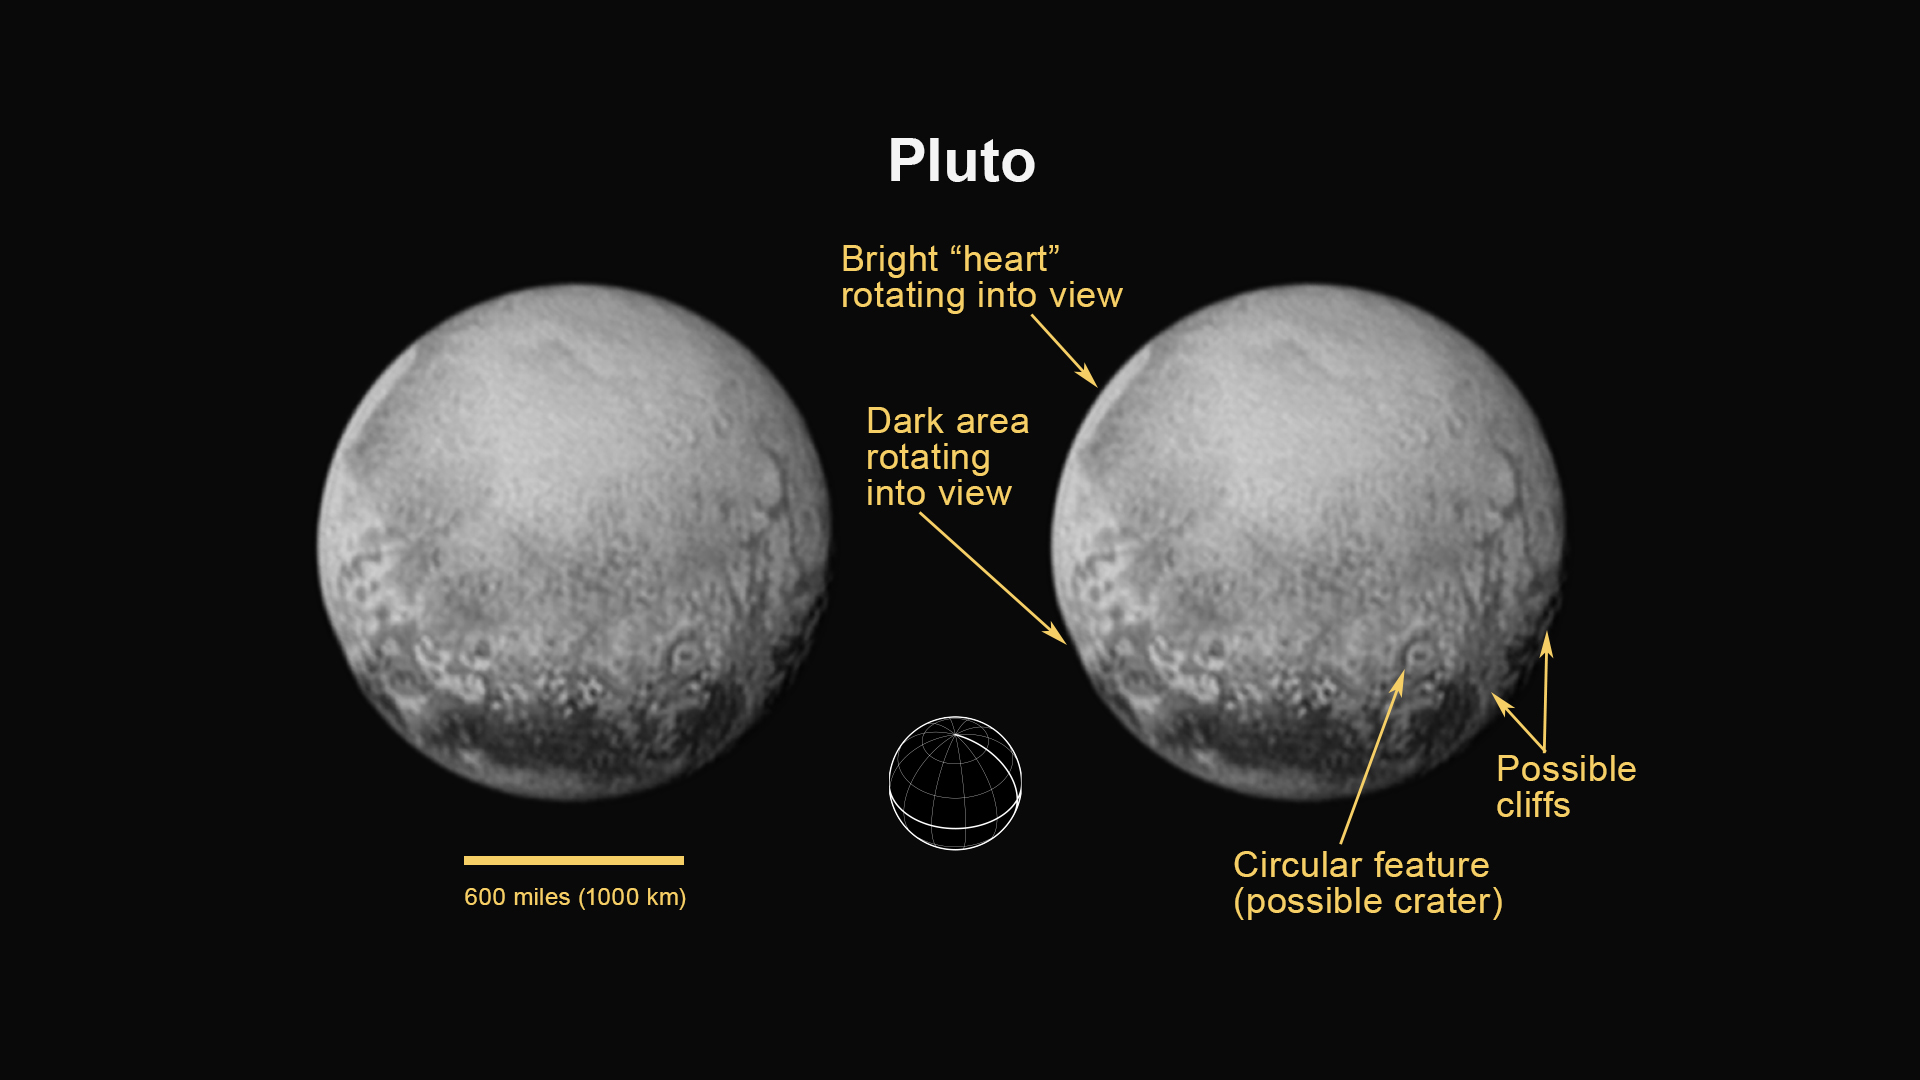 NASA Says One Million Miles to Go; Pluto is More ...